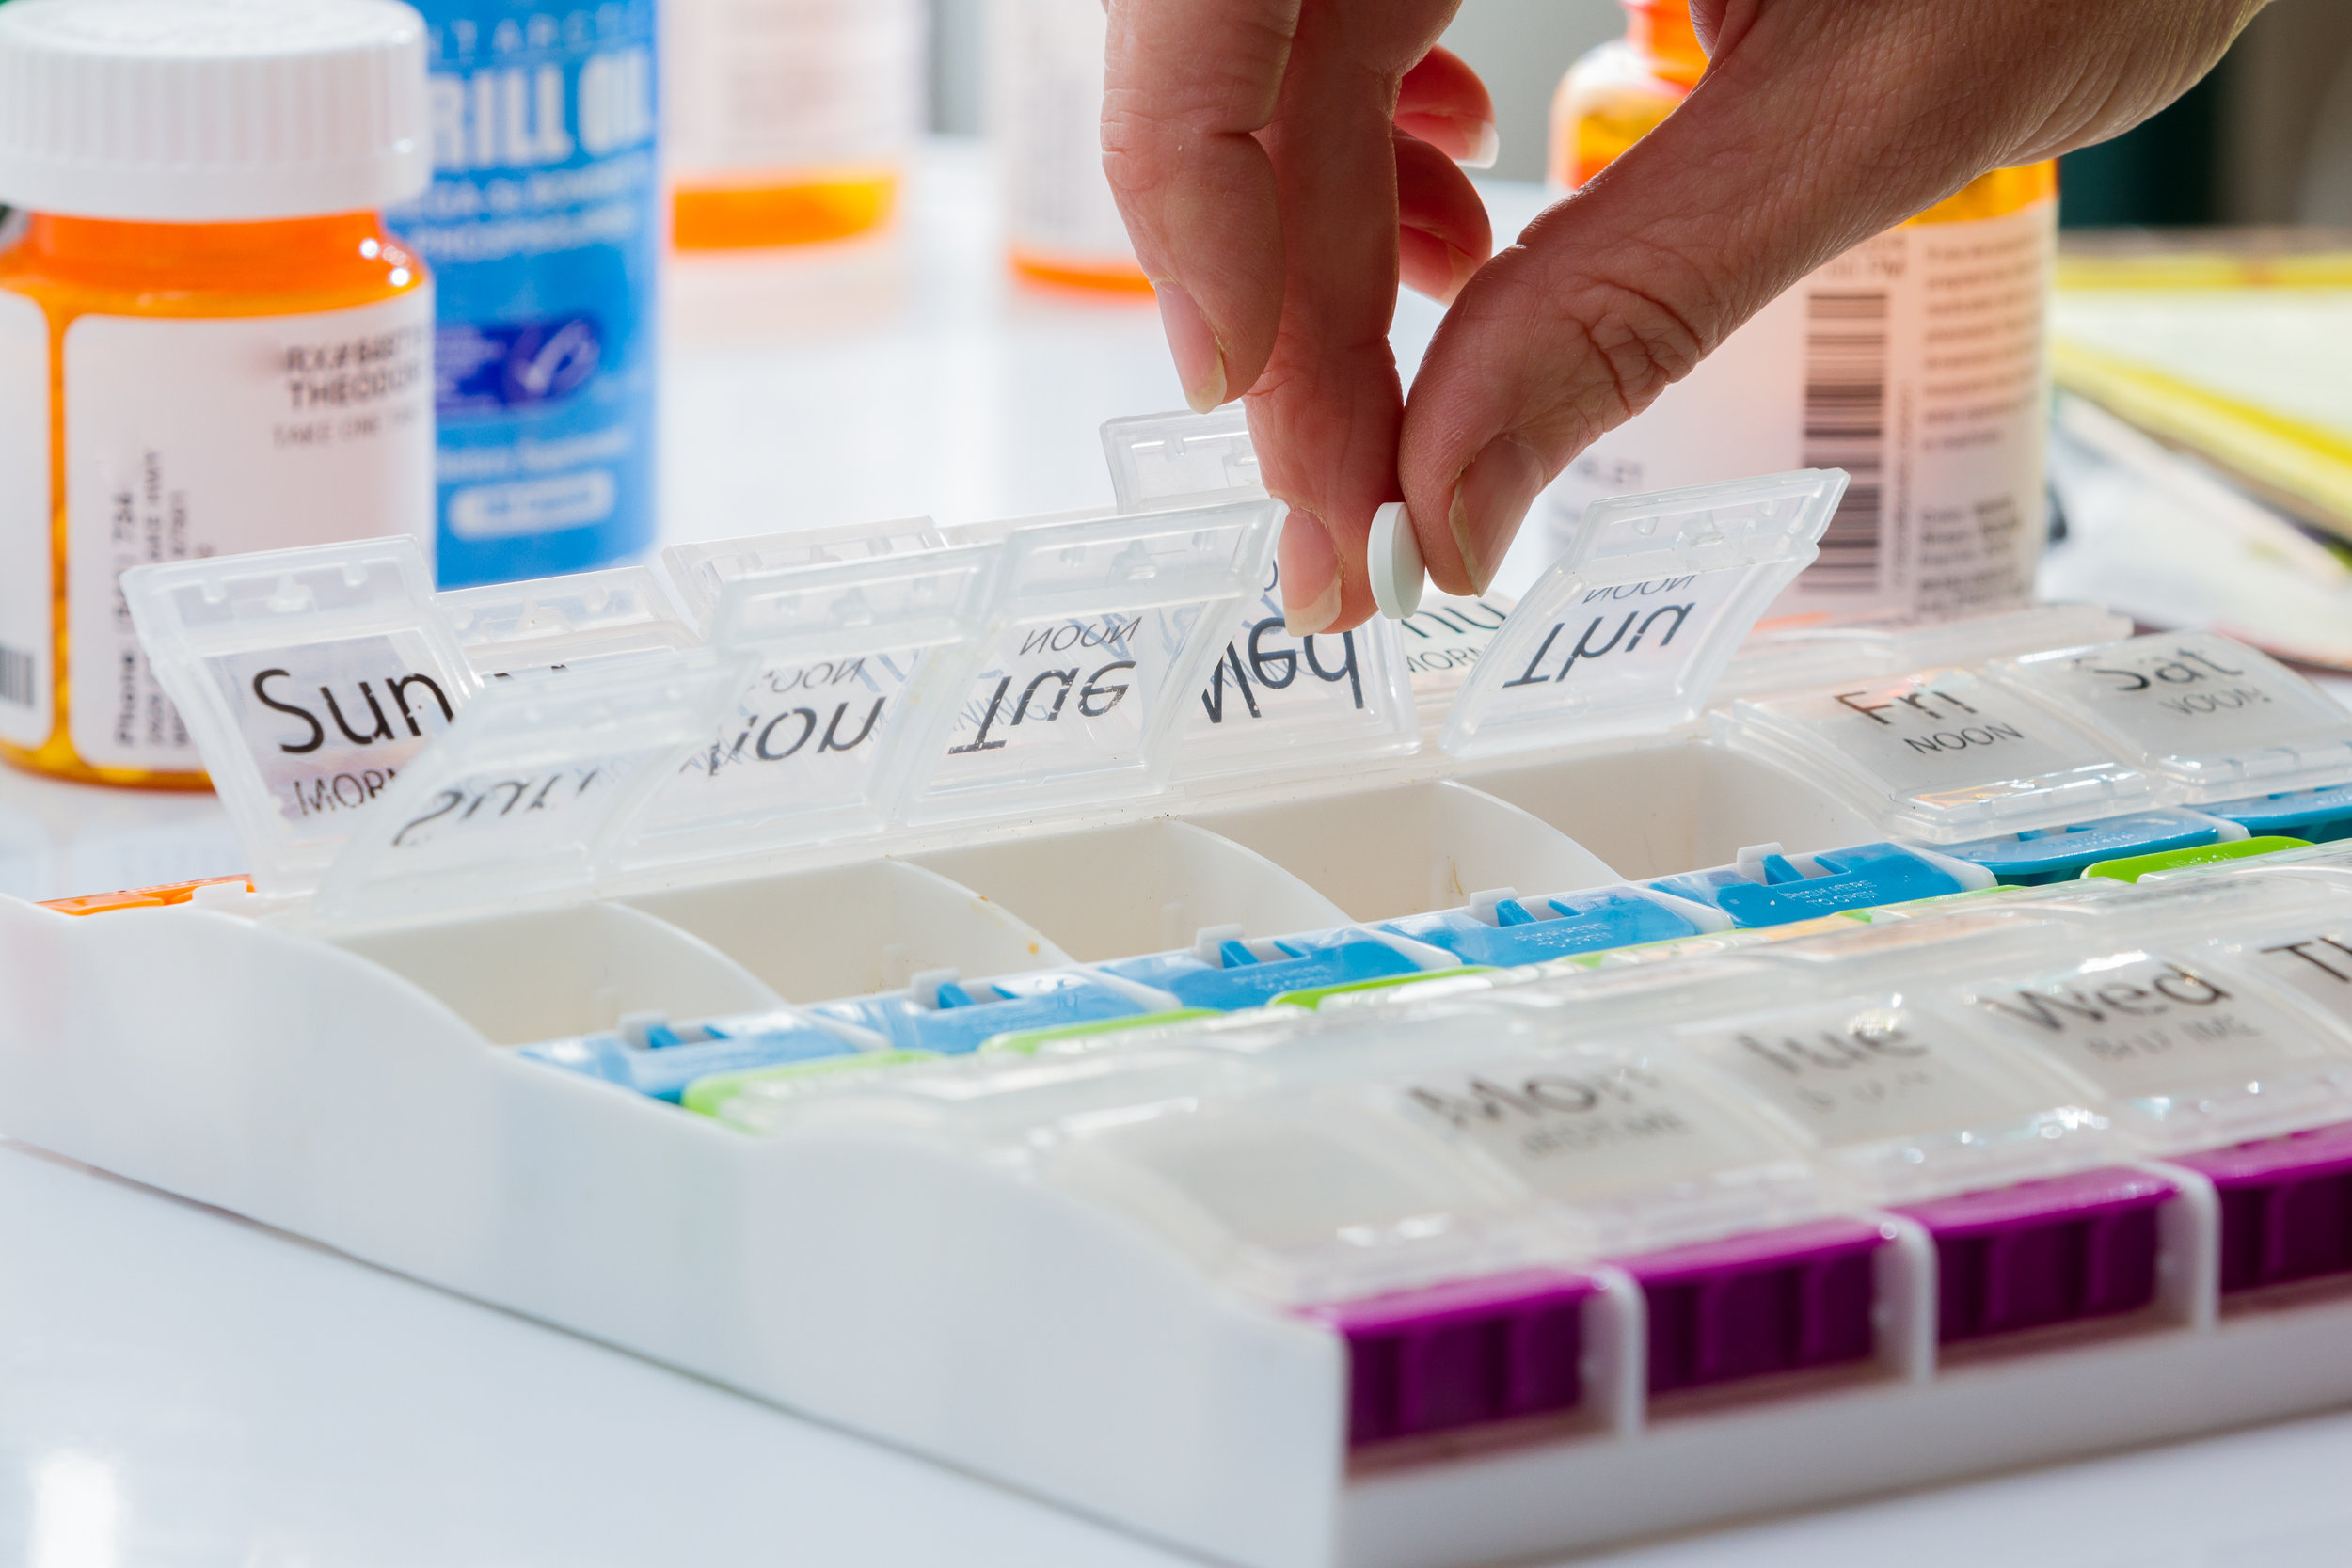 medication management for the elderly oxford healthcare home healthcare in tulsa oklahoma.jpg